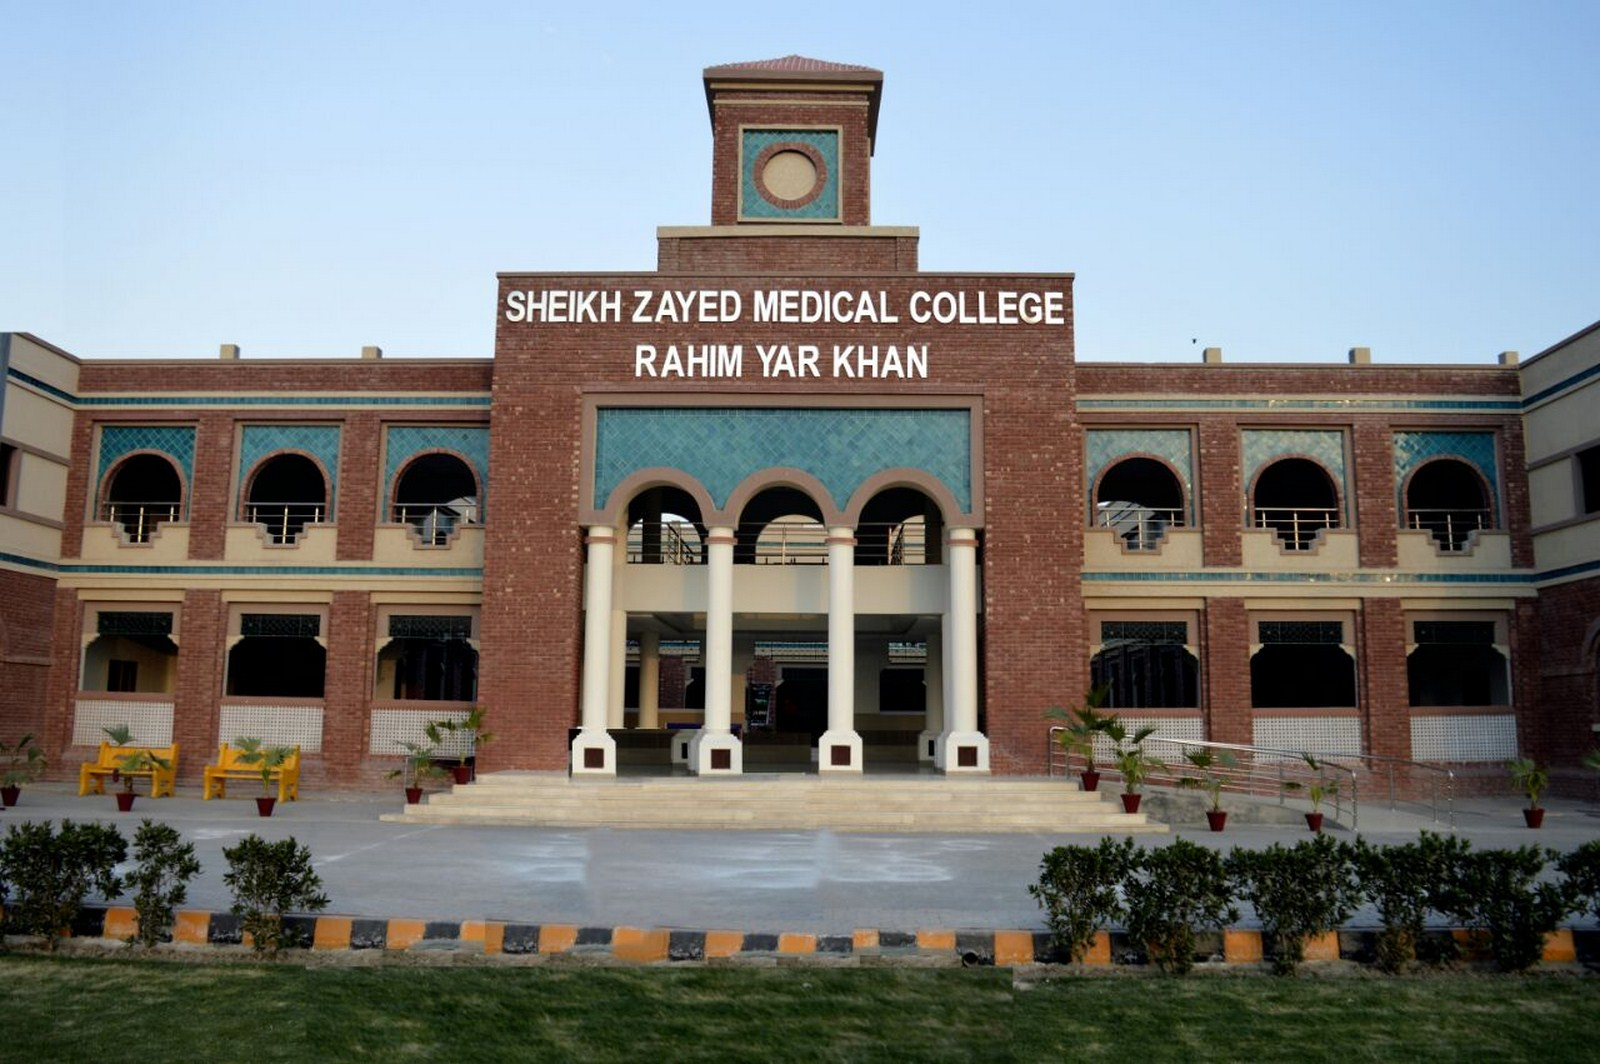 Sheikh Zayed Medical College-Sheikh Zayed Medical College Rahim Yar Khan